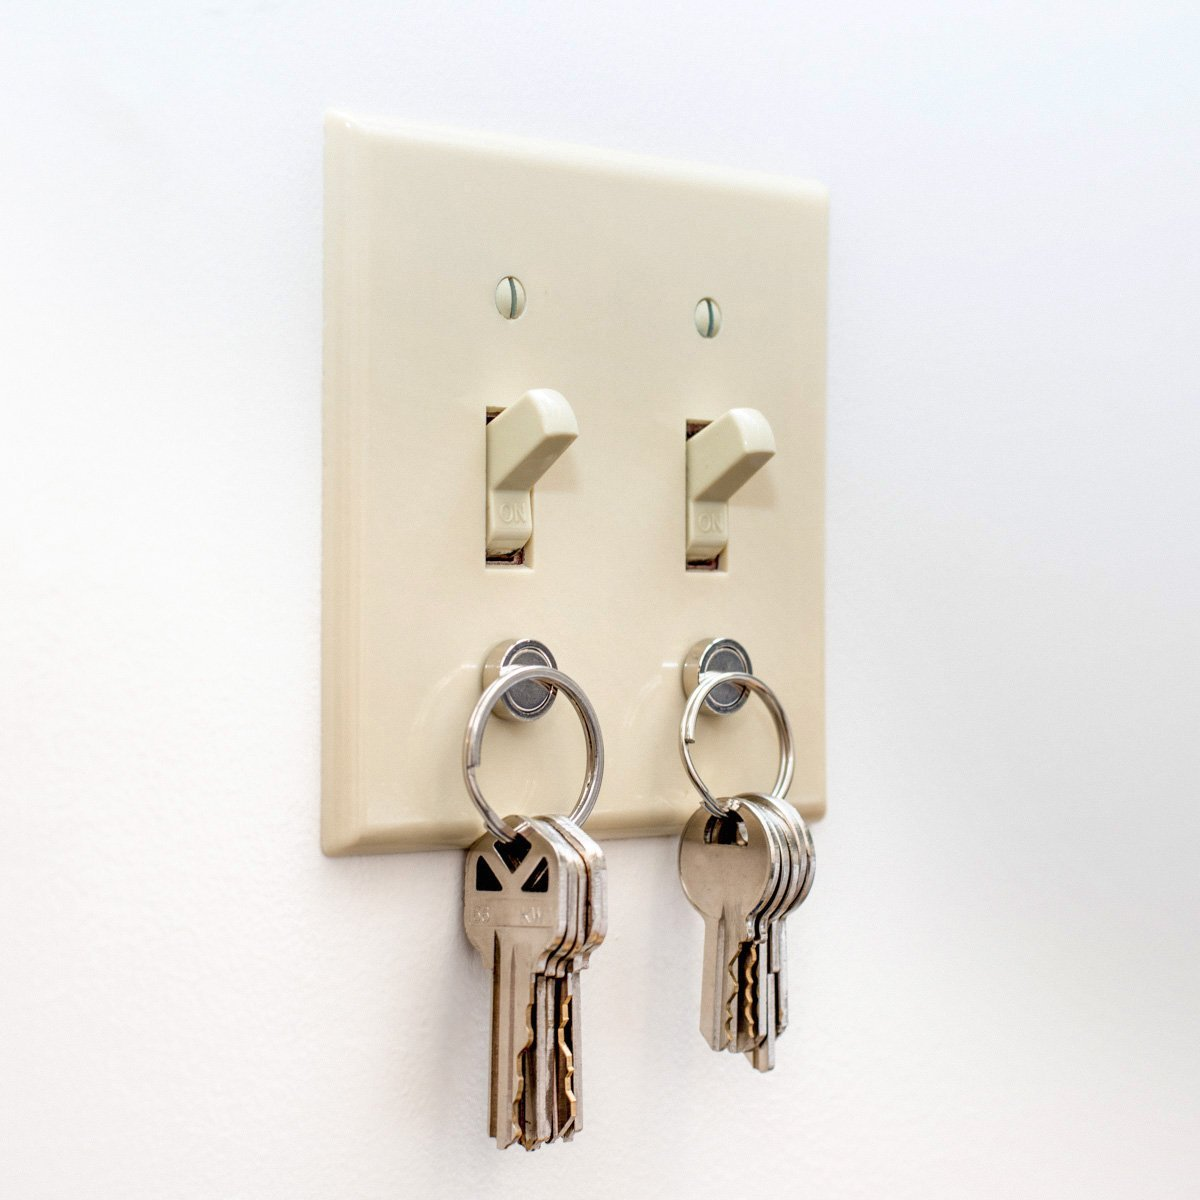 Magnetic Key Holder For Light Switch By Magkey Company